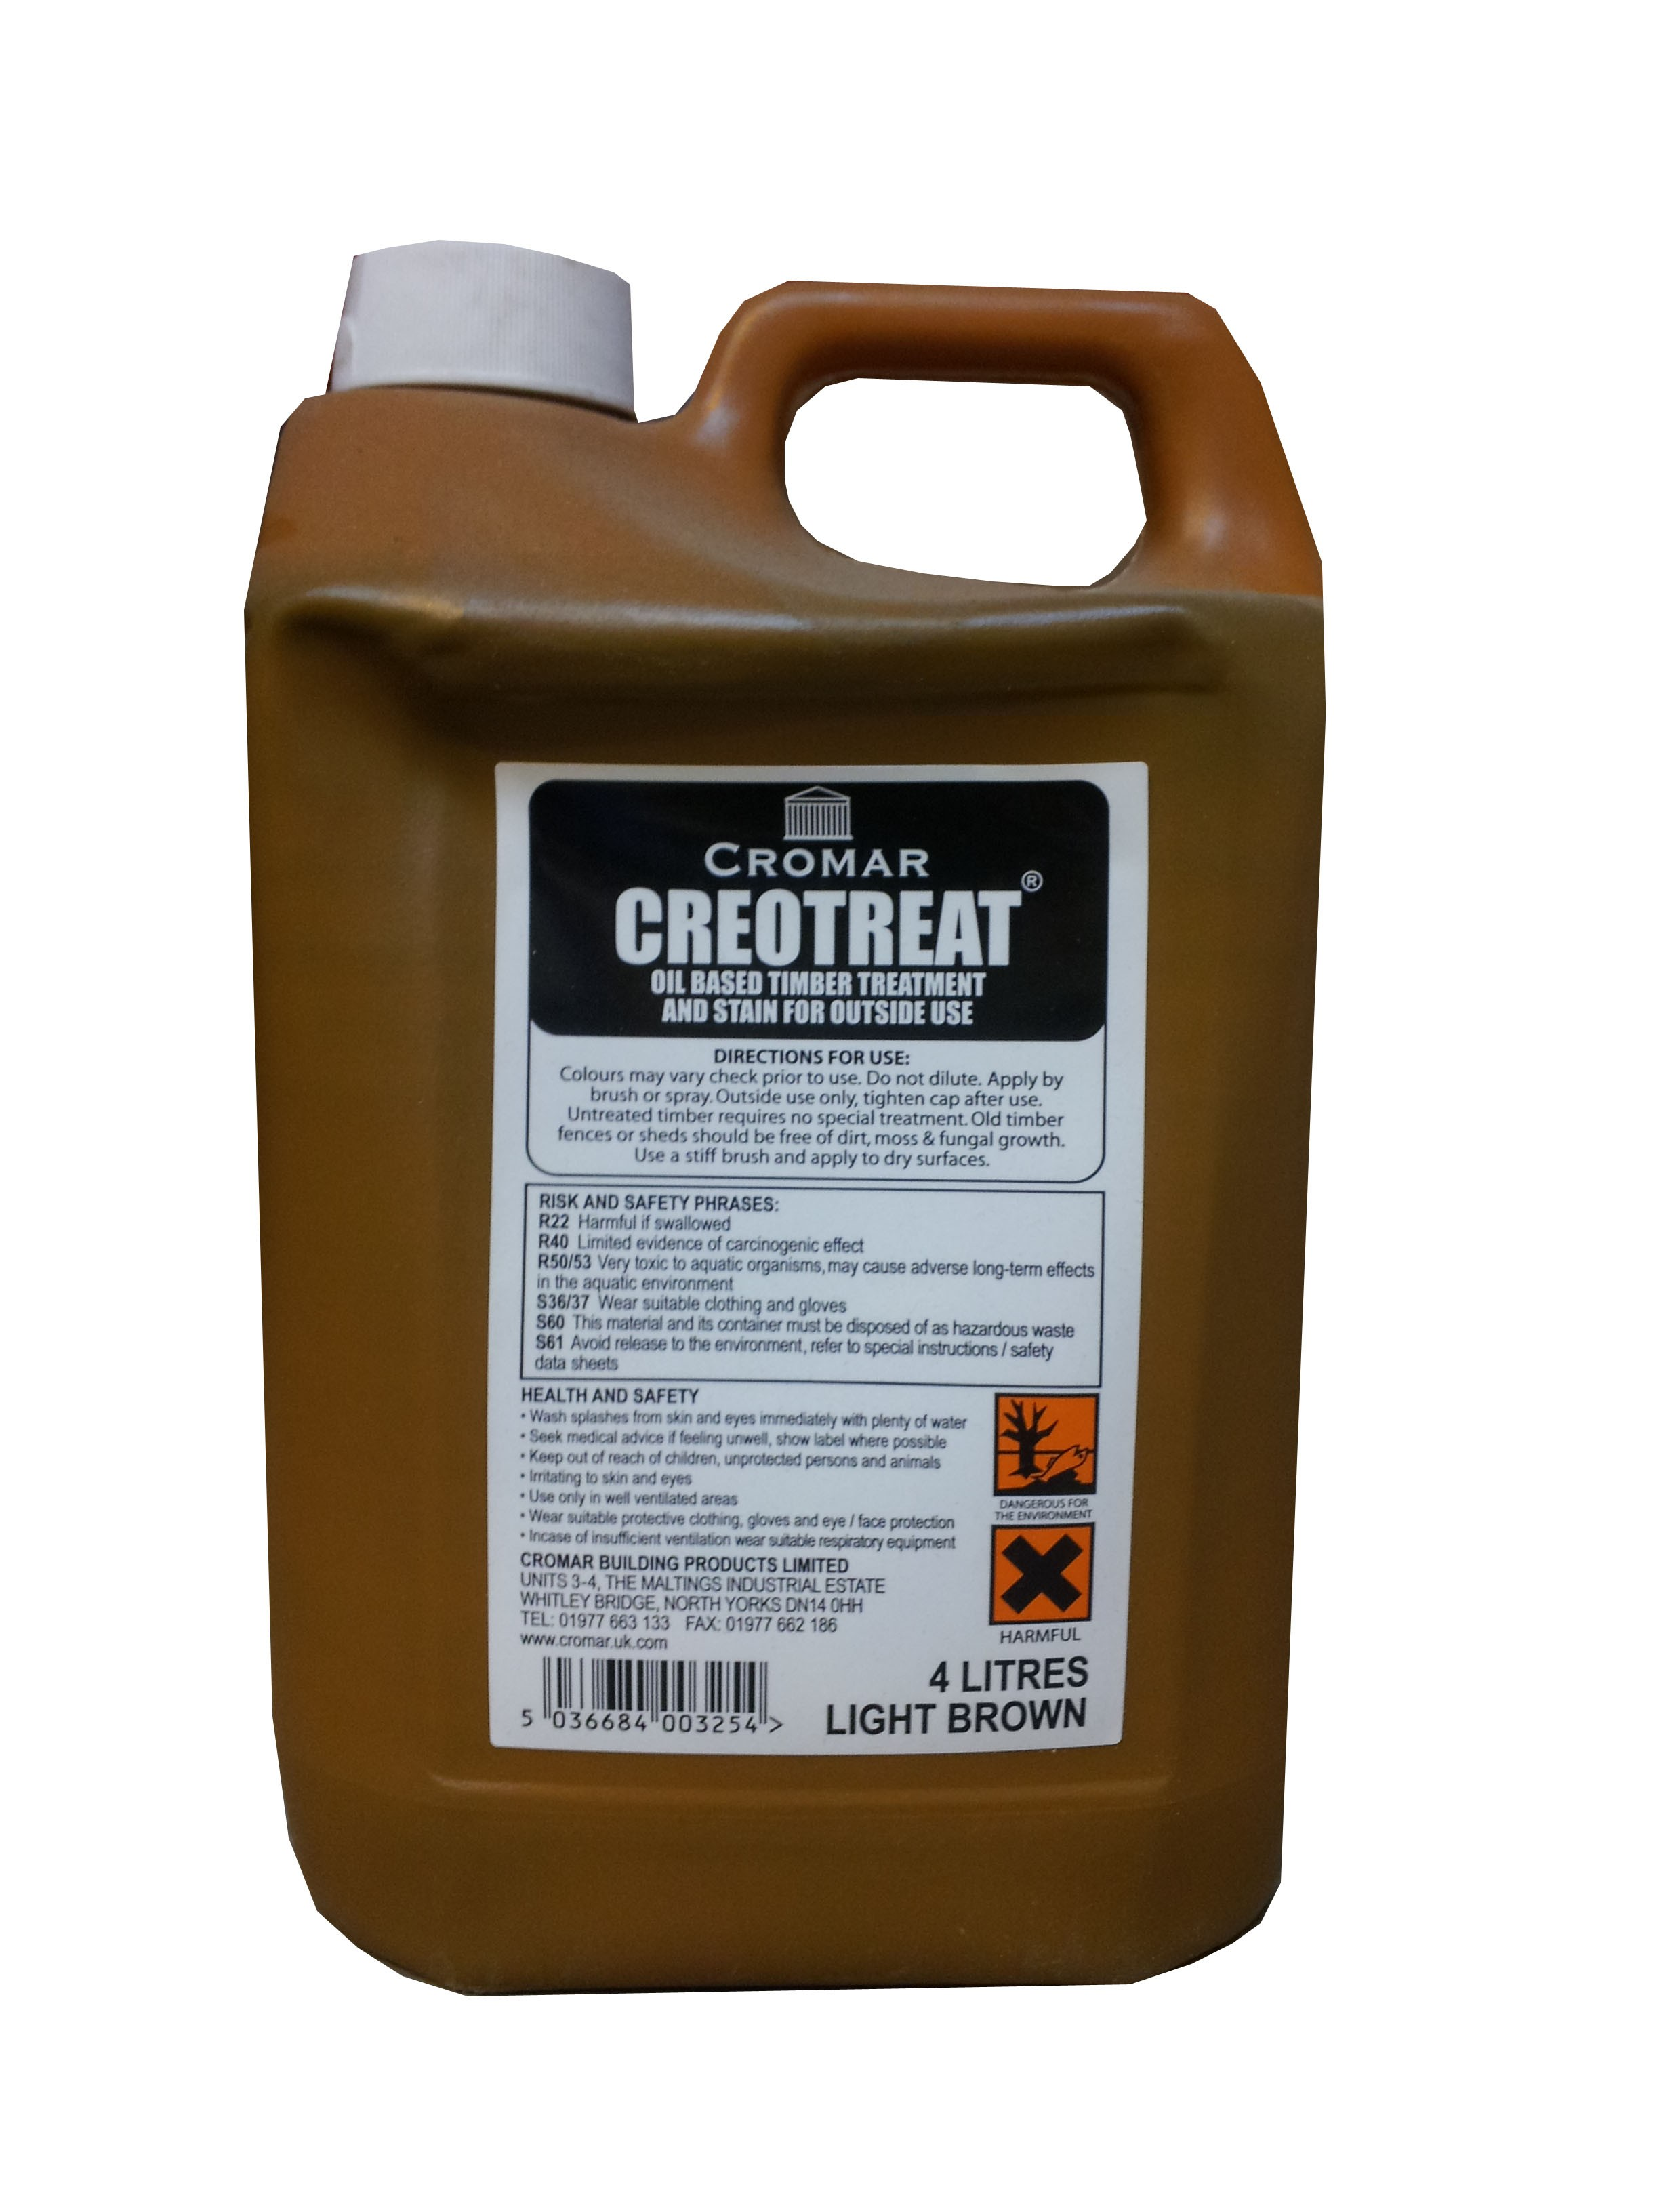 Cromar Creotreat Light Brown 4 Litres